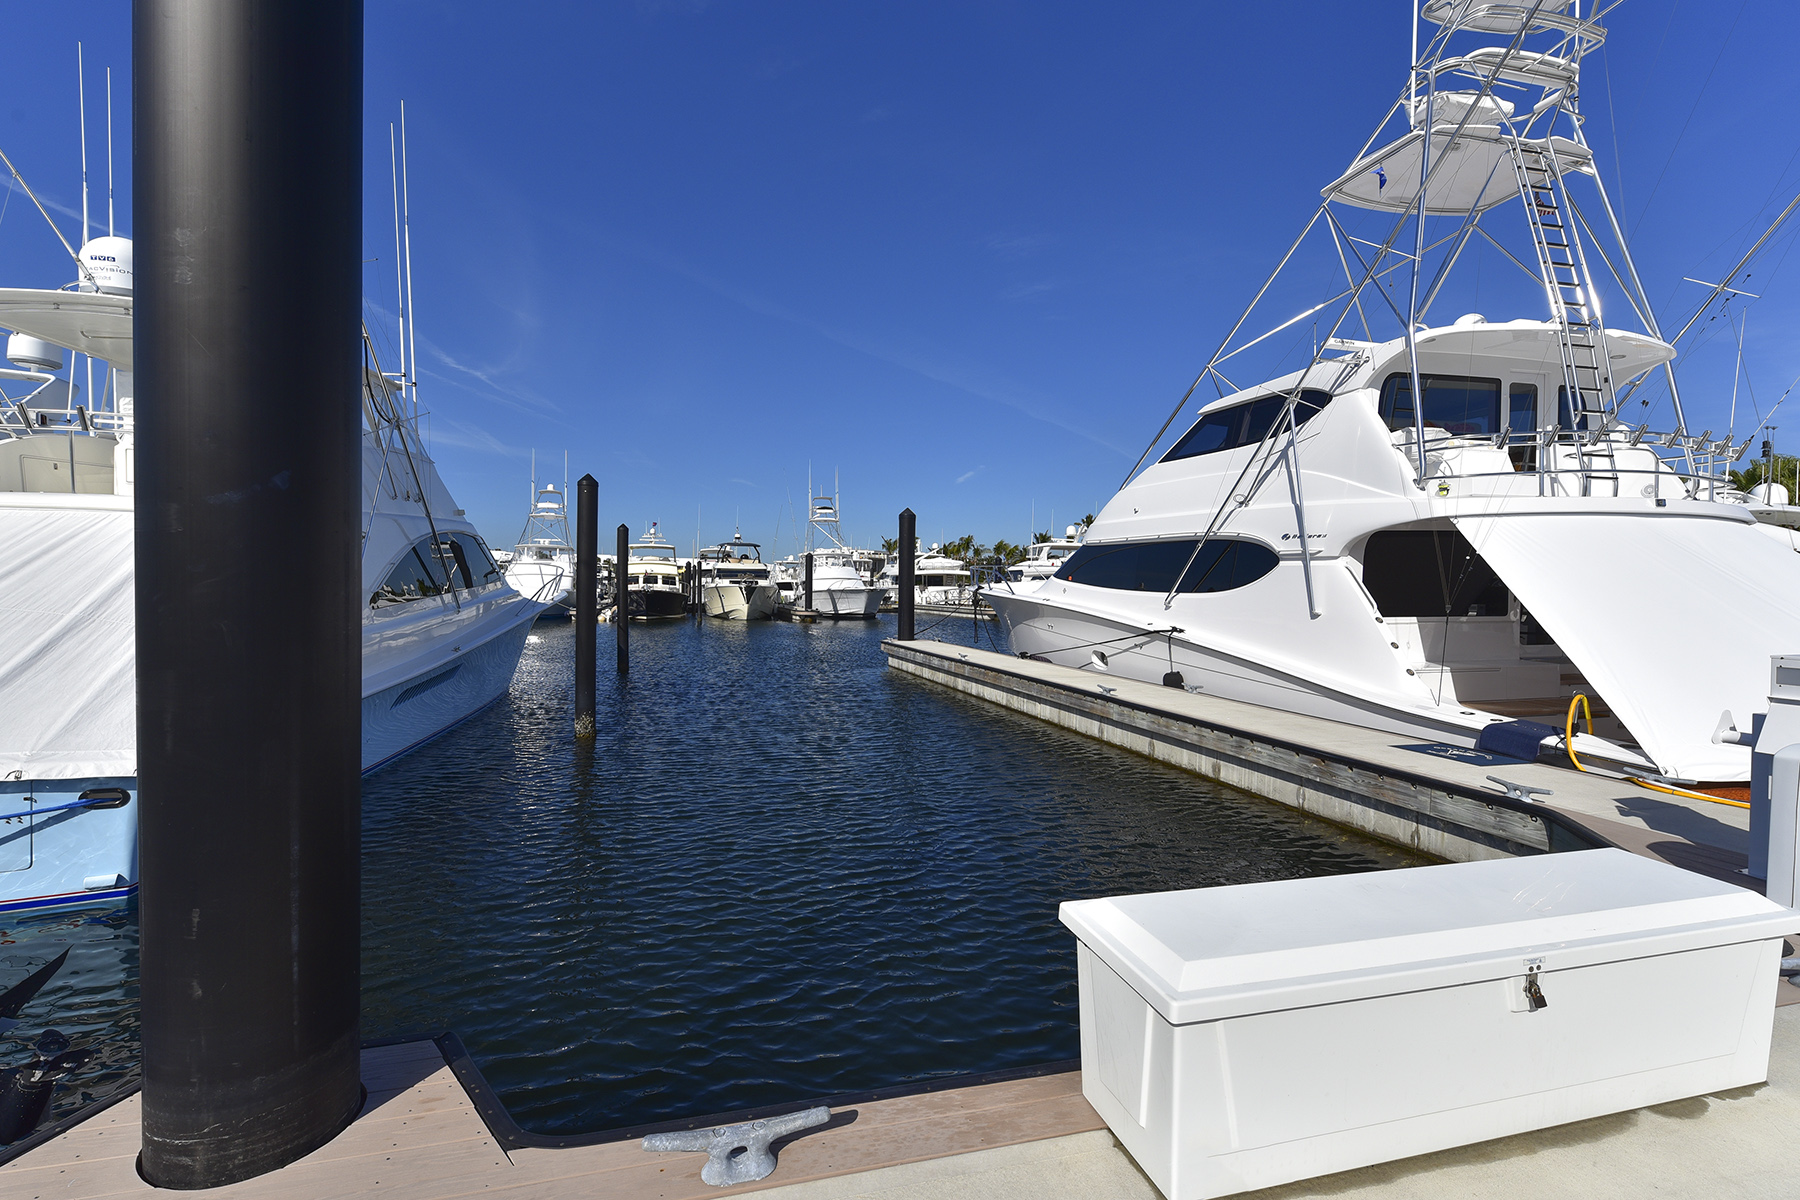 Additional photo for property listing at Ocean Reef Marina Offers Full Yacht Services 201 Ocean Reef Drive, ES-29 Key Largo, Florida 33037 Estados Unidos